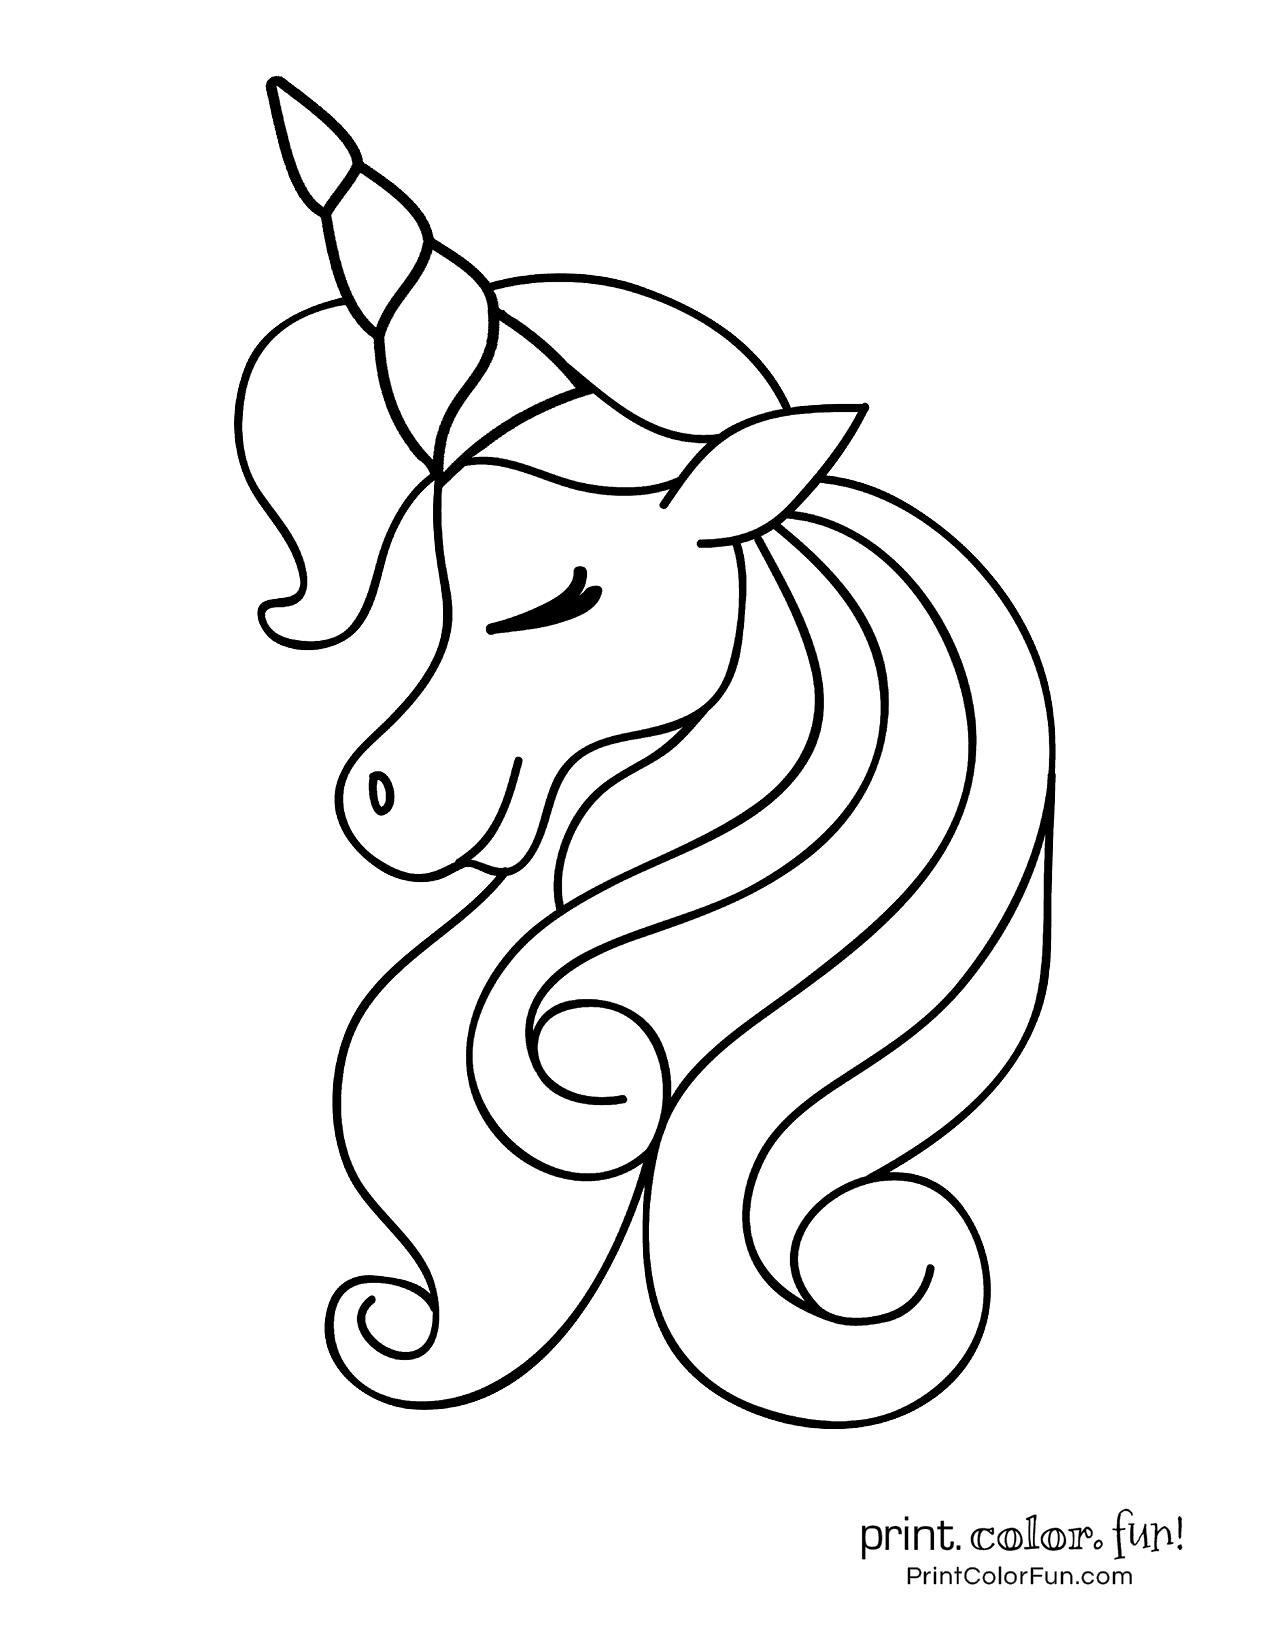 100 Magical Unicorn Coloring Pages The Ultimate Free Printable Collection At Print Color In 2020 Unicorn Coloring Pages Easy Coloring Pages Mermaid Coloring Pages